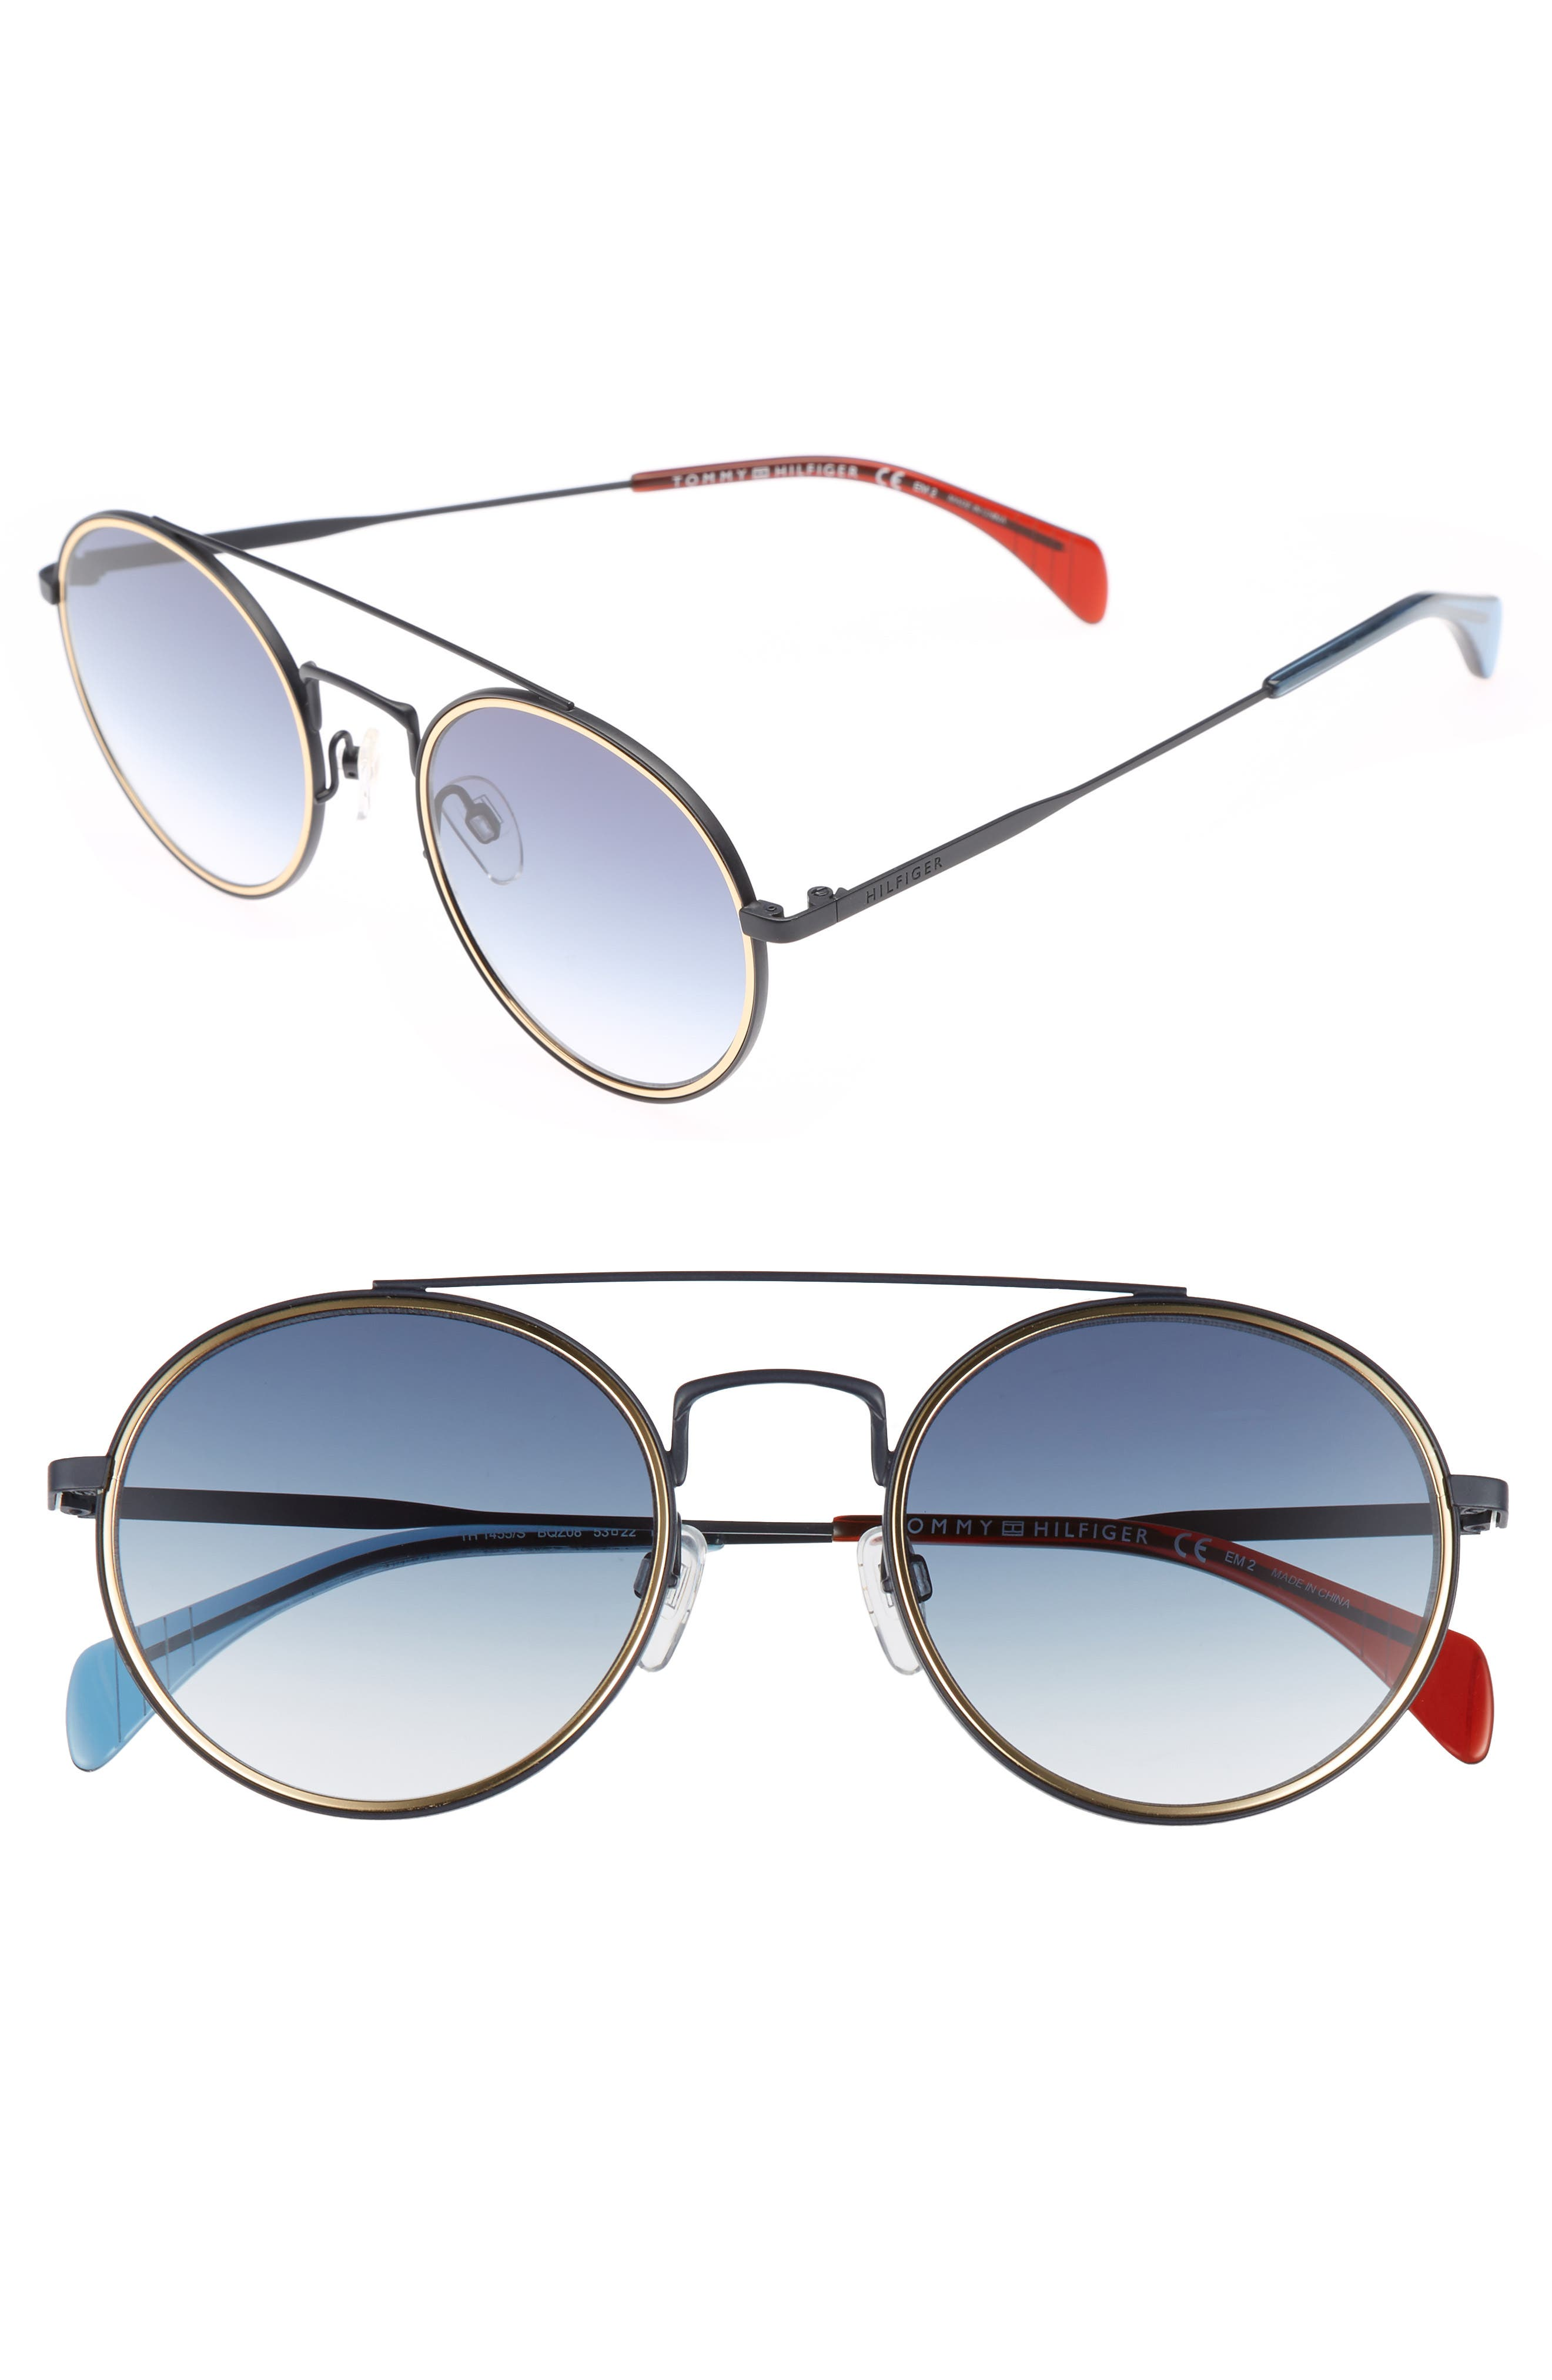 Alternate Image 1 Selected - Tommy Hilfiger 53mm Round Sunglasses